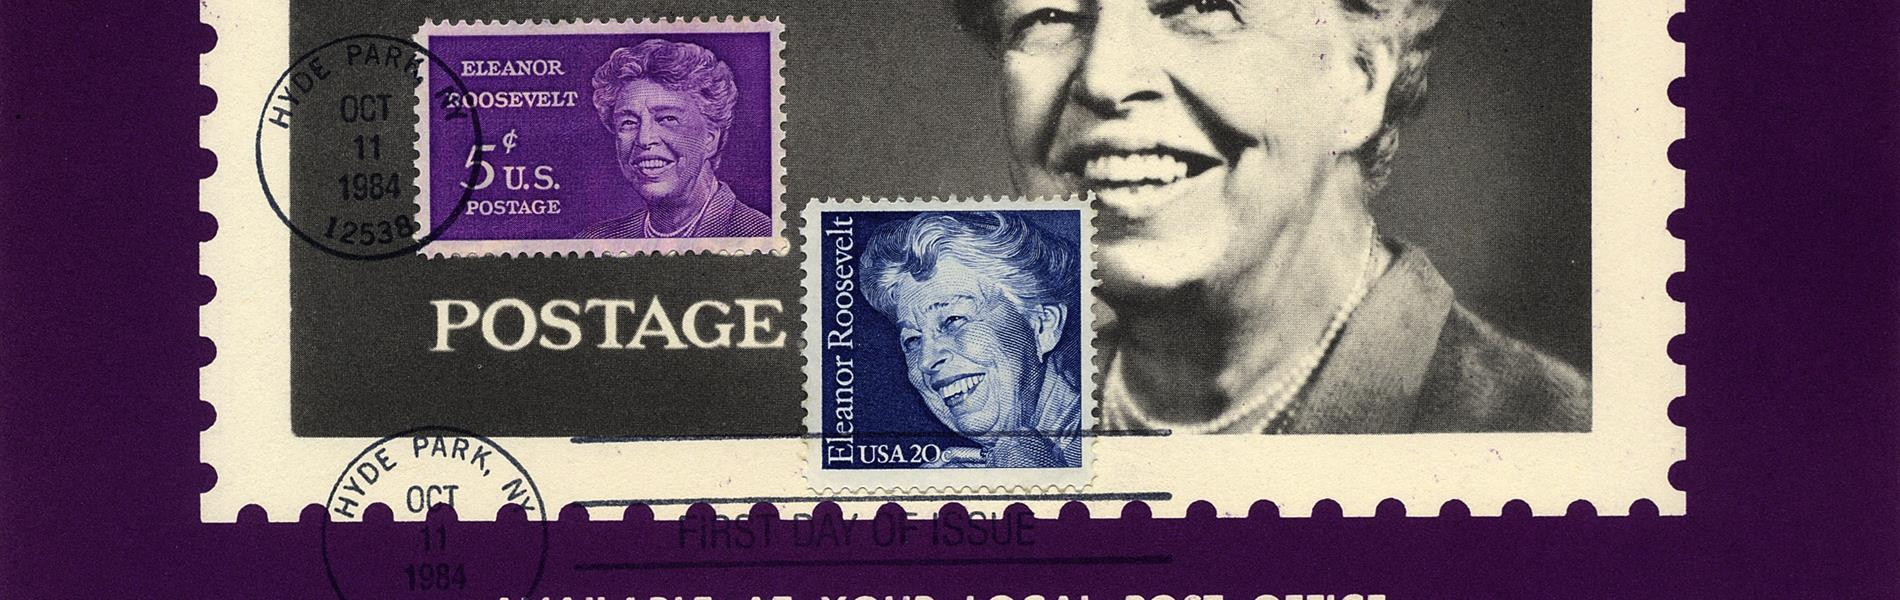 united-states-eleanor-roosevelt-stamp-announcement-poster-1963